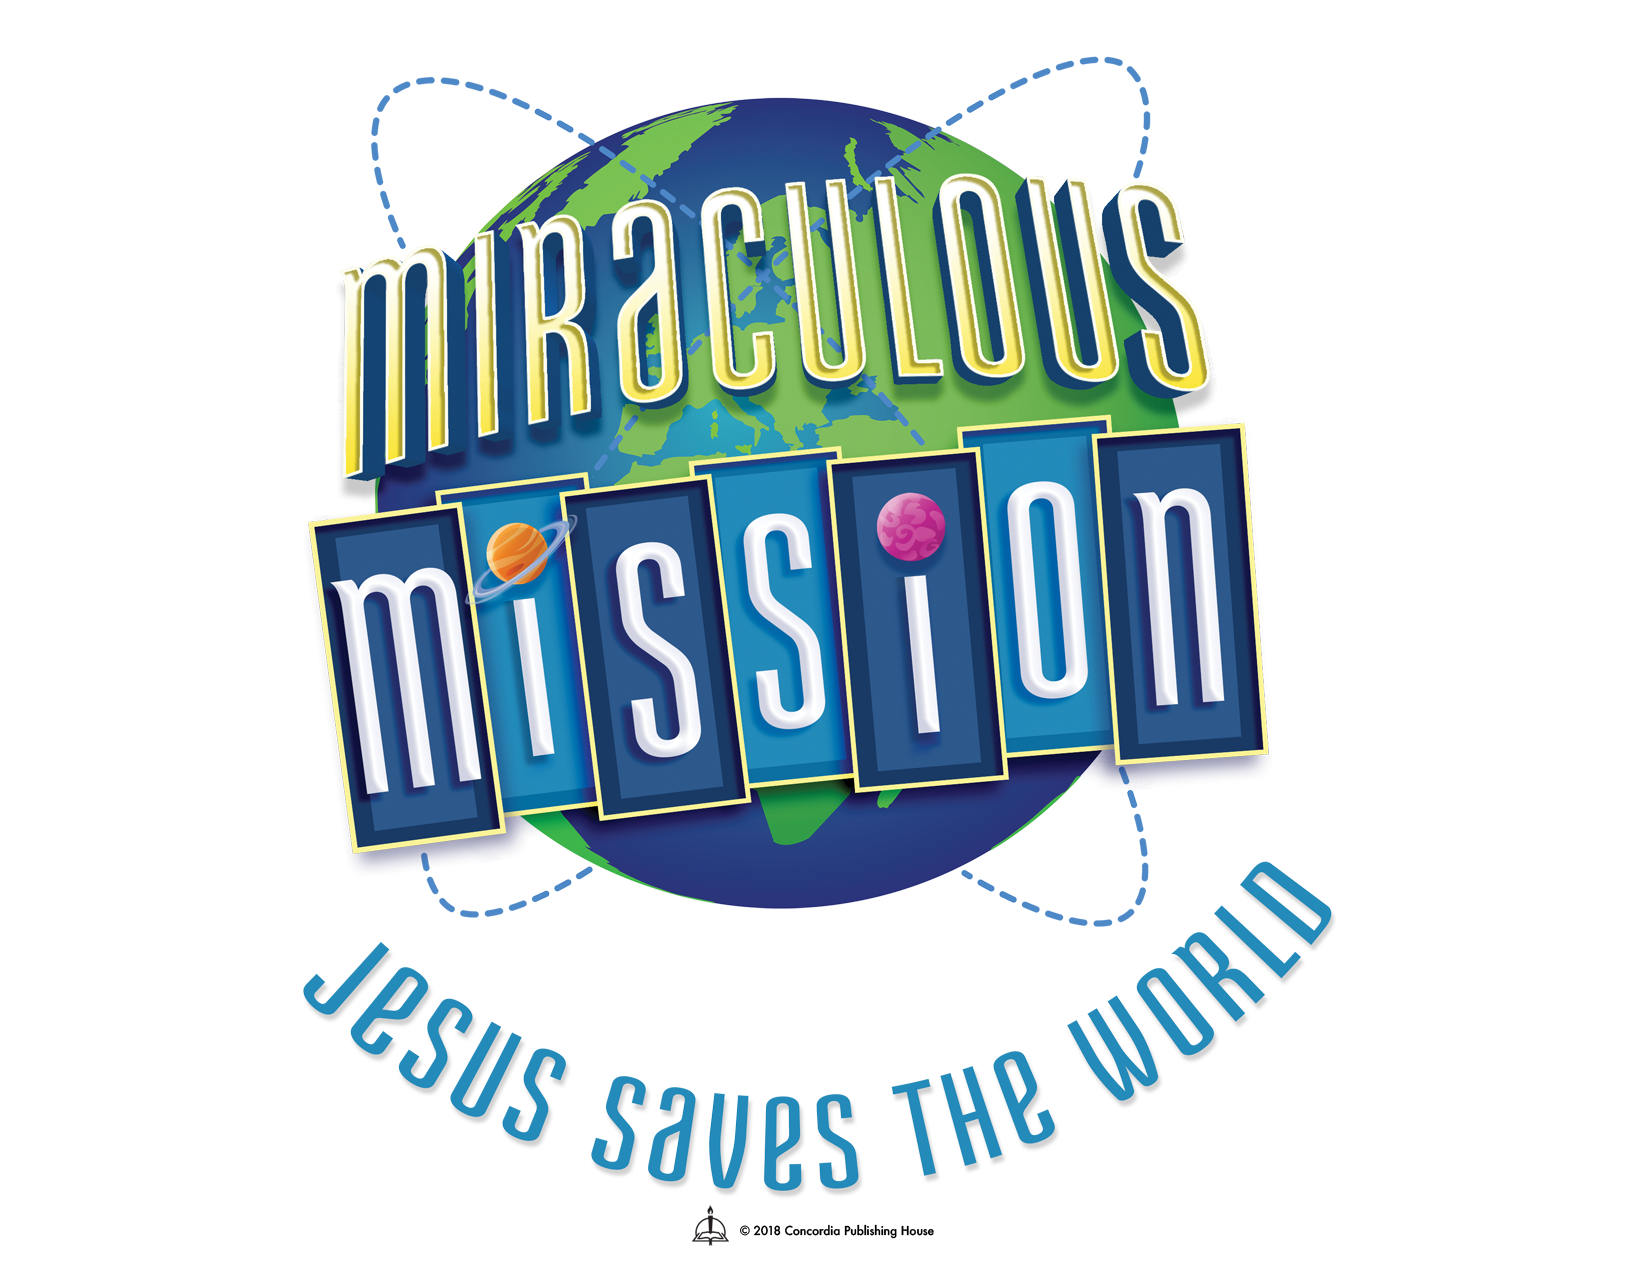 Miraculous Mission Logo